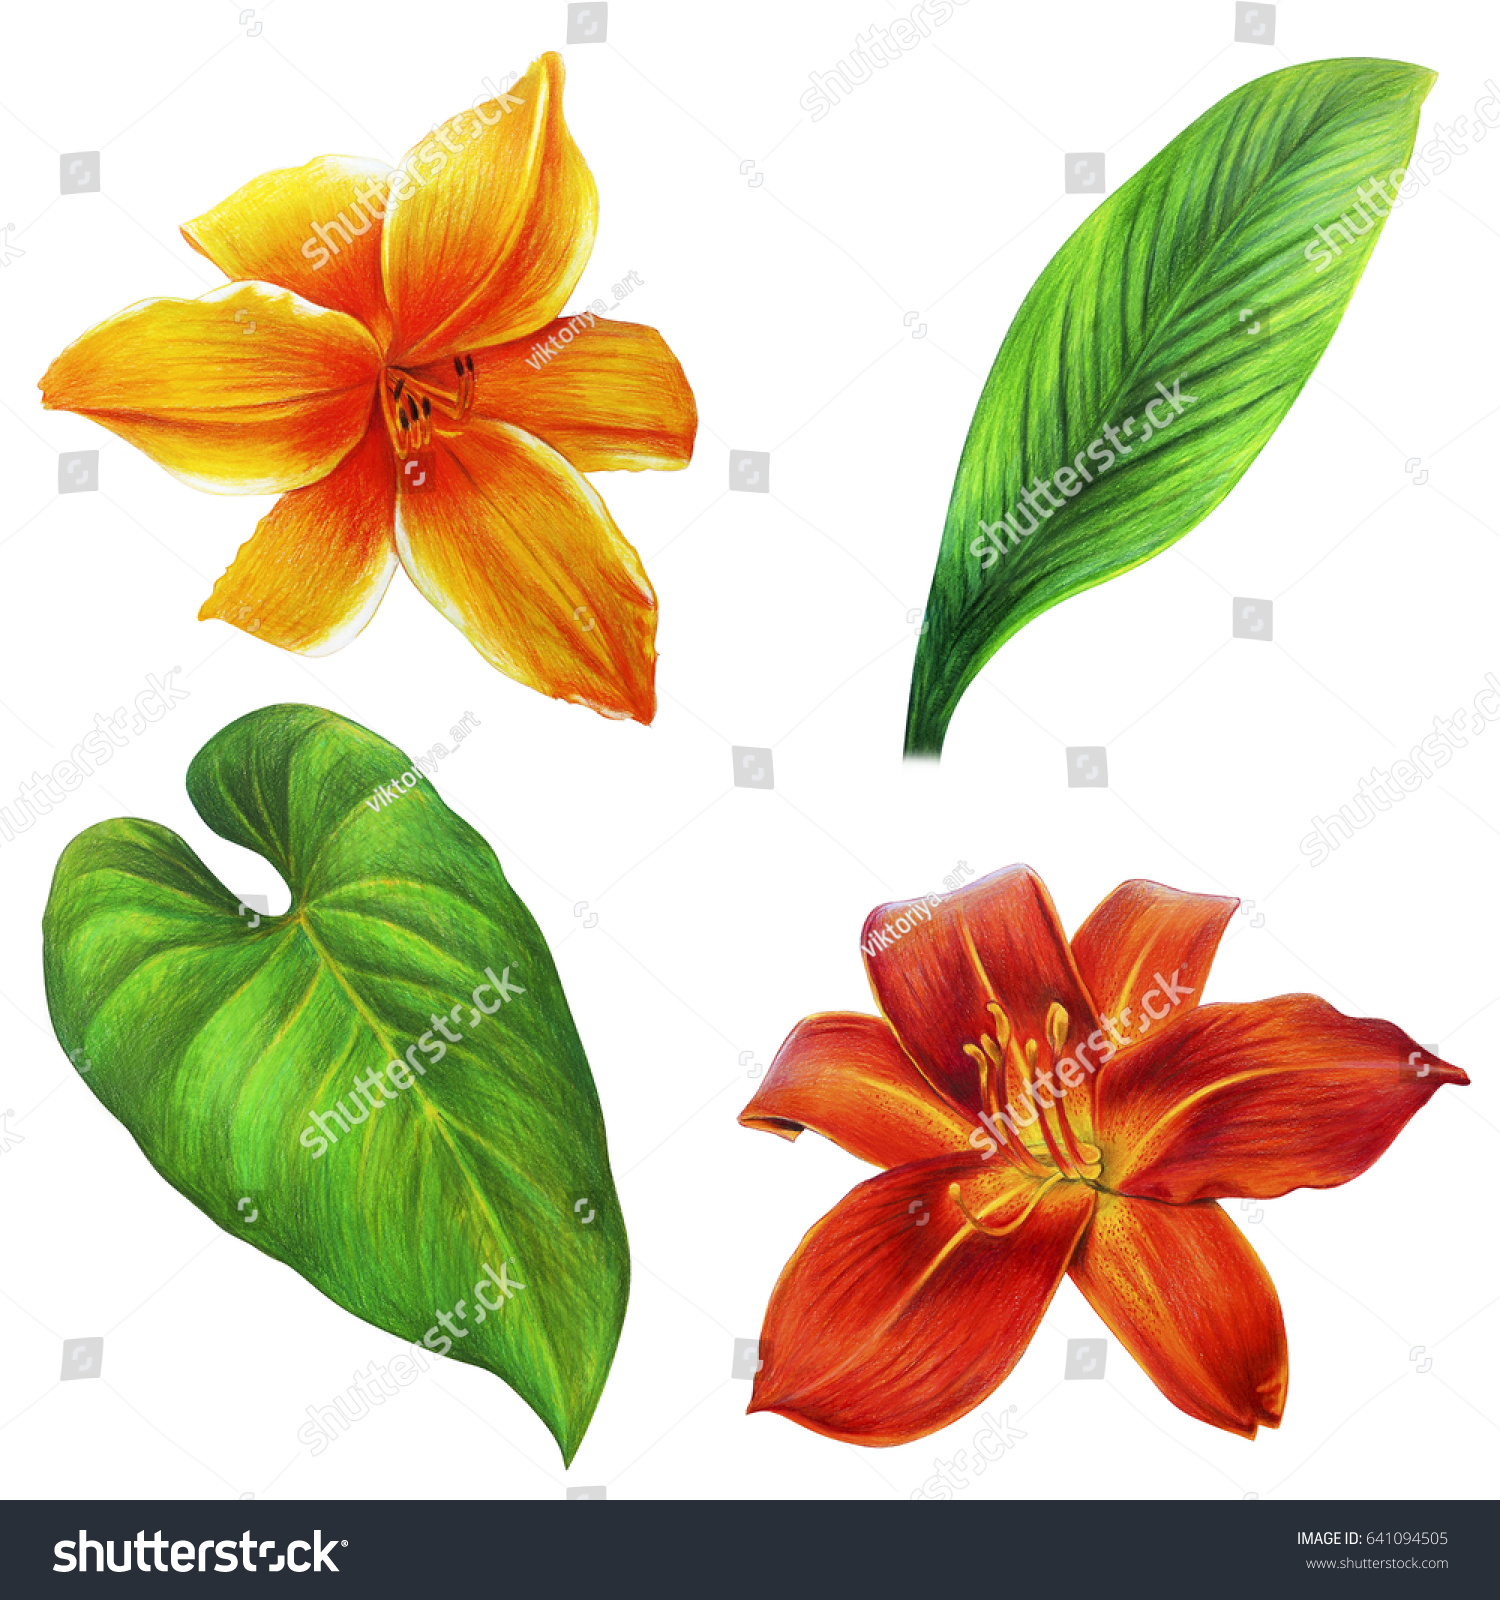 Flowers Leaves Big Drawing Daylily Greenery Stock Illustration 641094505,Boneless Ribs In Oven